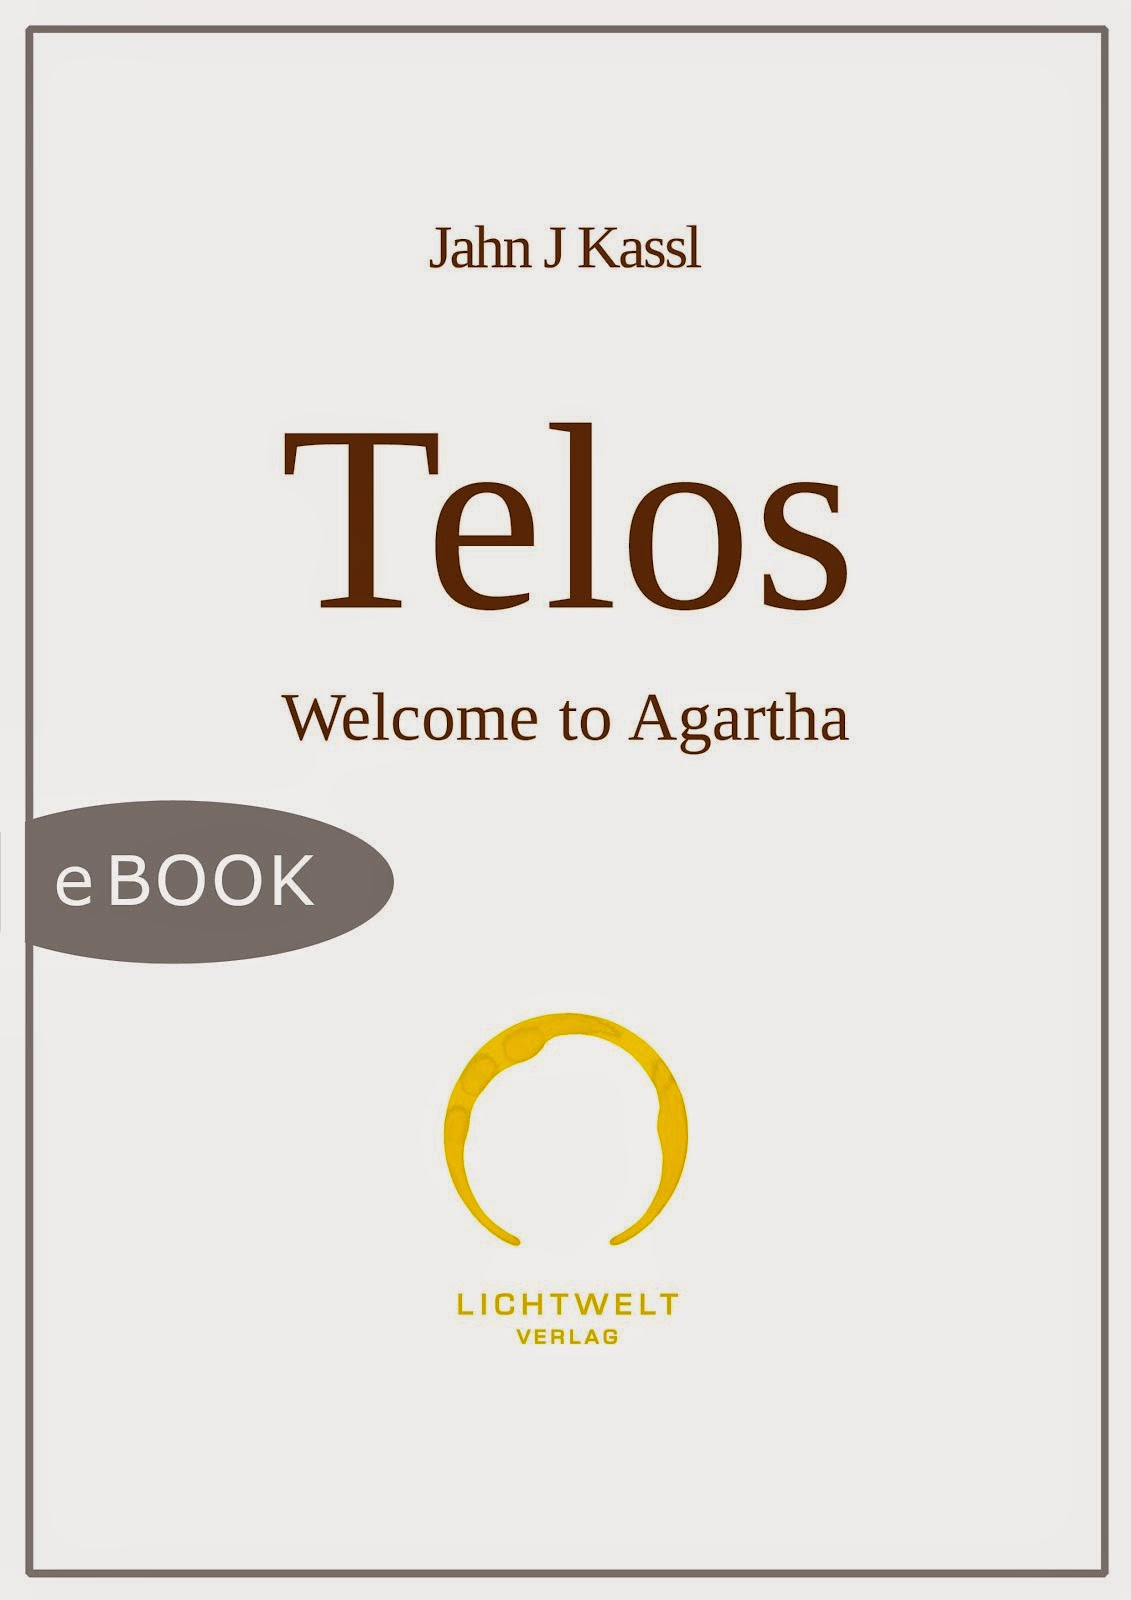 TELOS, Welcome to Agartha - JAHN J KASSL (digital publication)